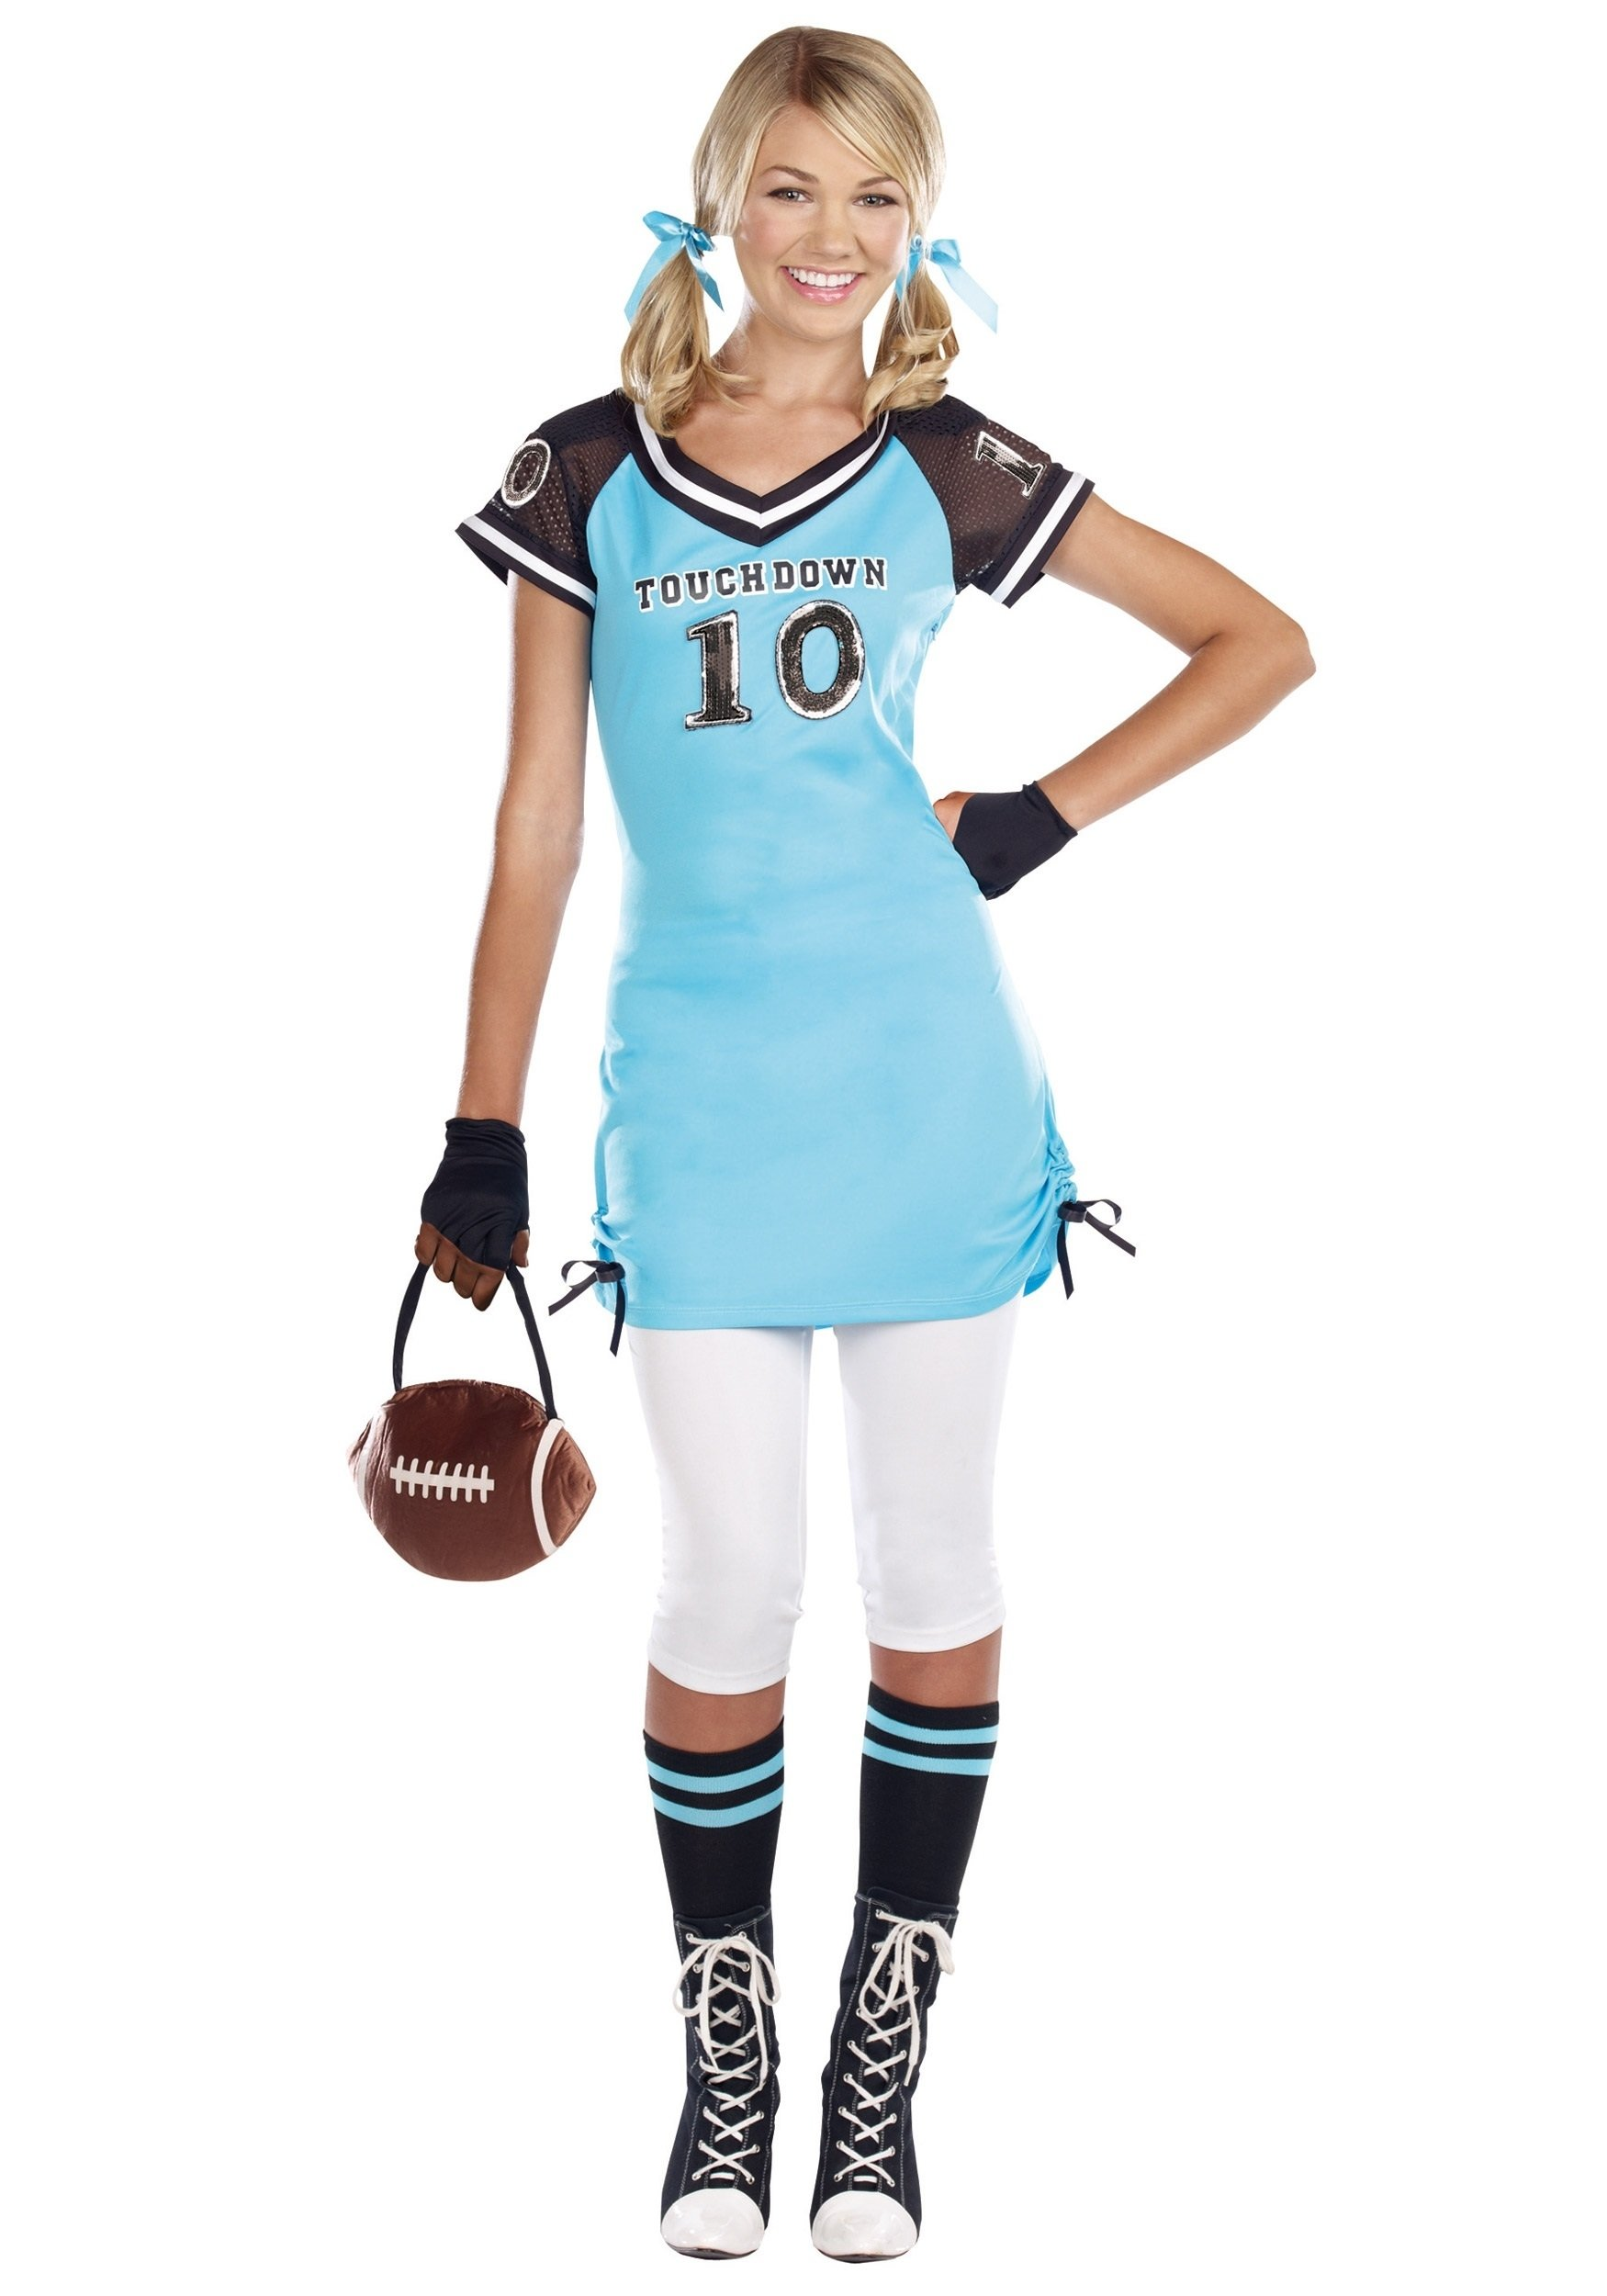 10 Most Recommended Halloween Costumes Teenage Girls Ideas teen touchdown cutie costume halloween costumes 1  sc 1 th 268 & 10 Most Recommended Halloween Costumes Teenage Girls Ideas